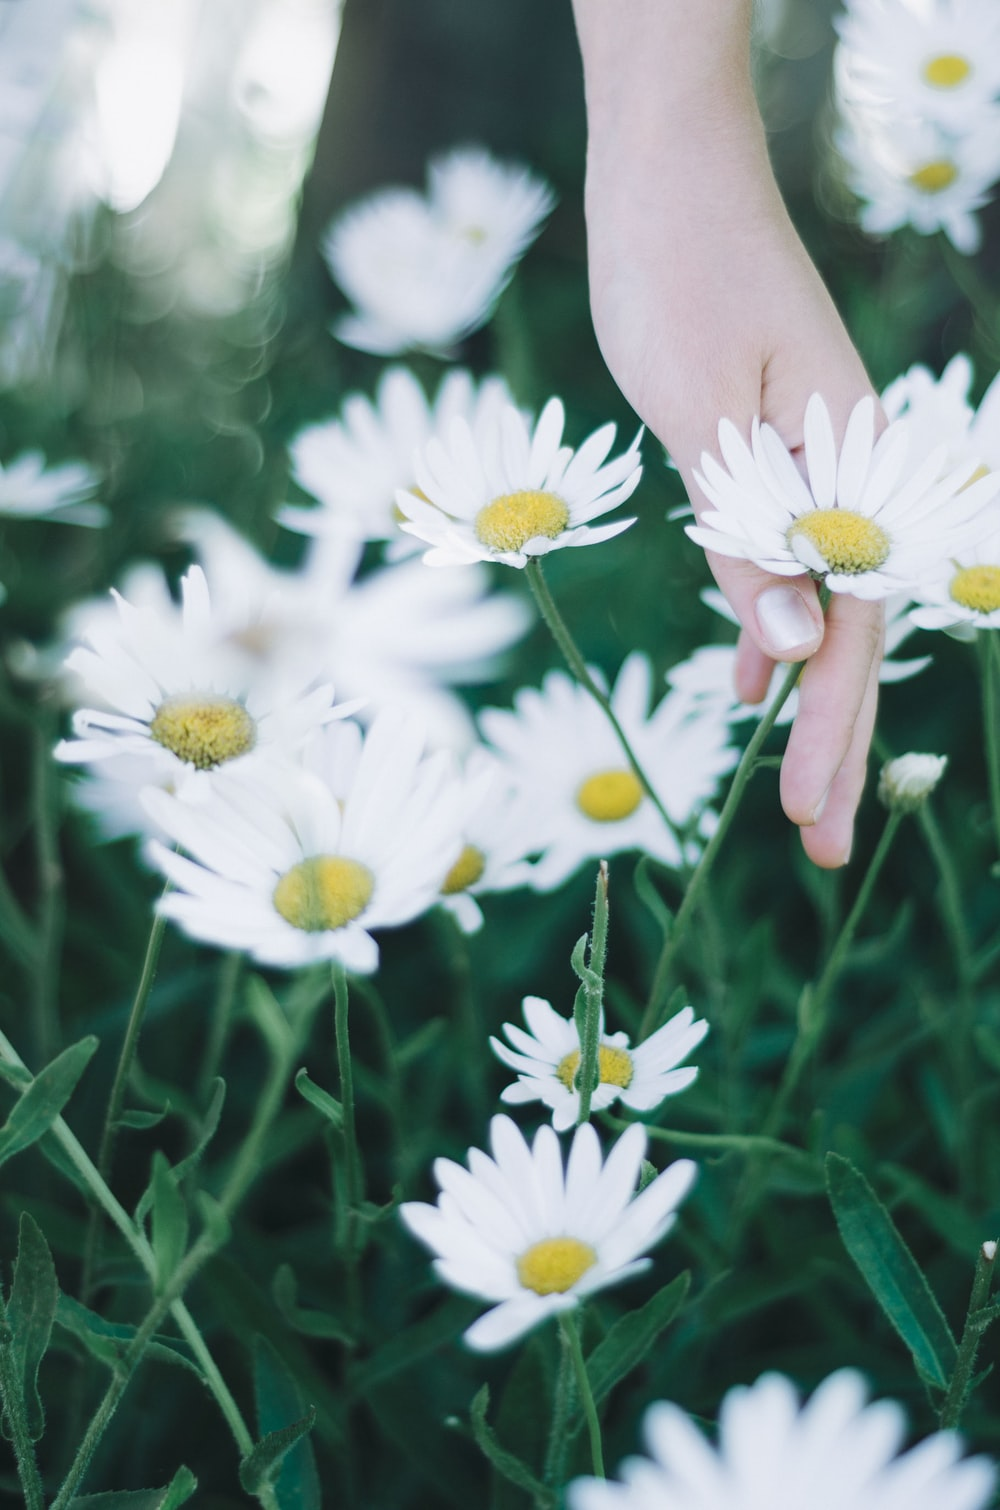 Holding daisy pictures download free images on unsplash person holding daisy flowers izmirmasajfo